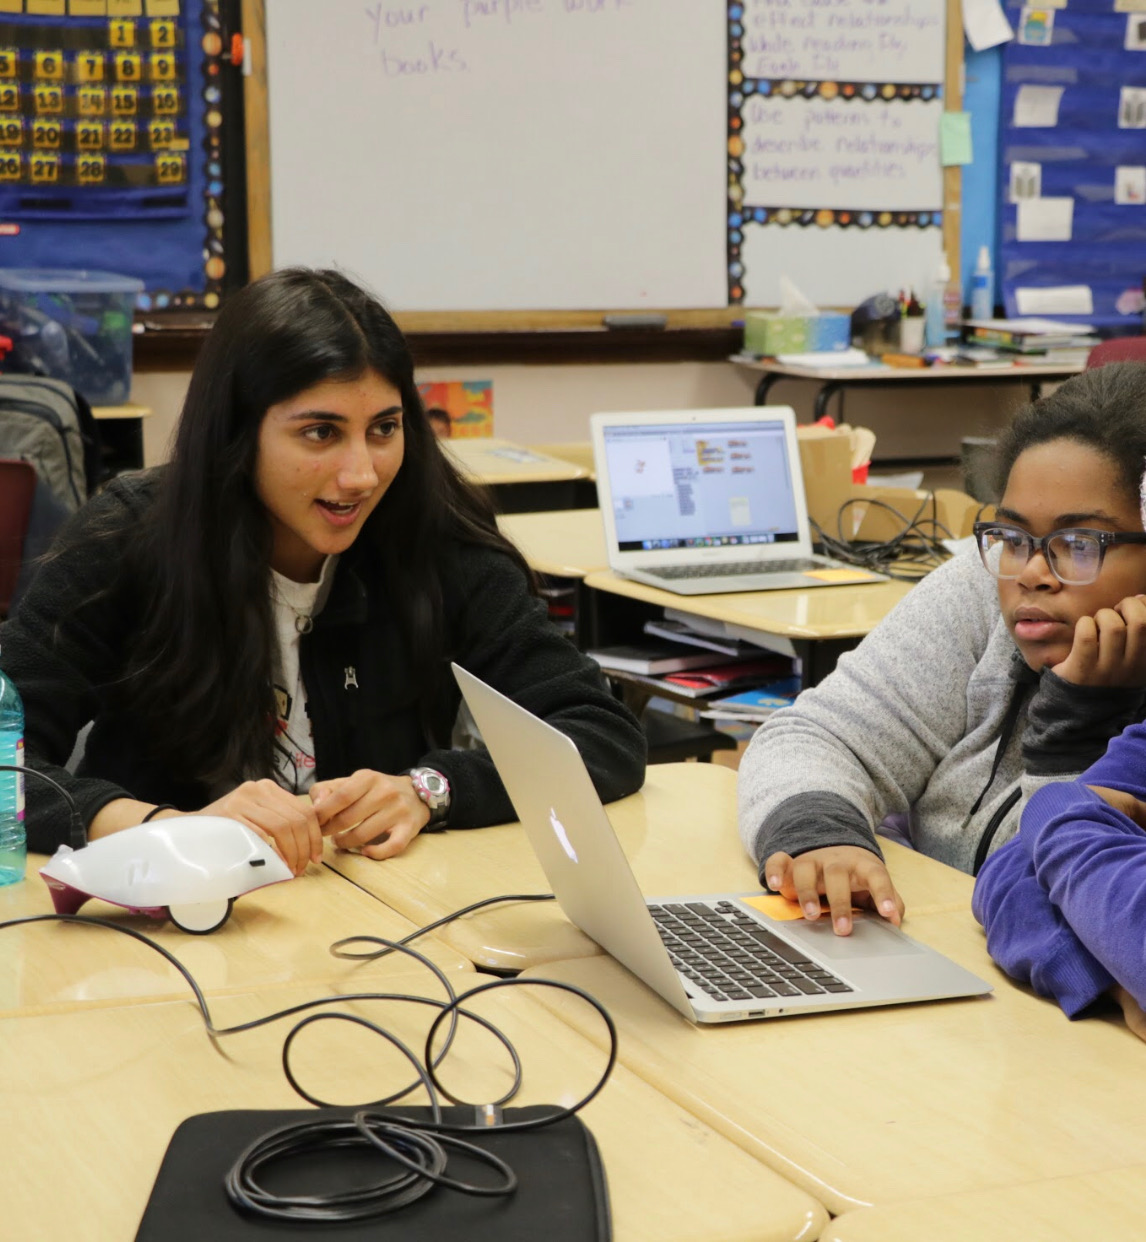 University of Chicago student Devshi Mehrotra devotes up to 25 hours a week working on programs designed to get young girls excited about computer science.